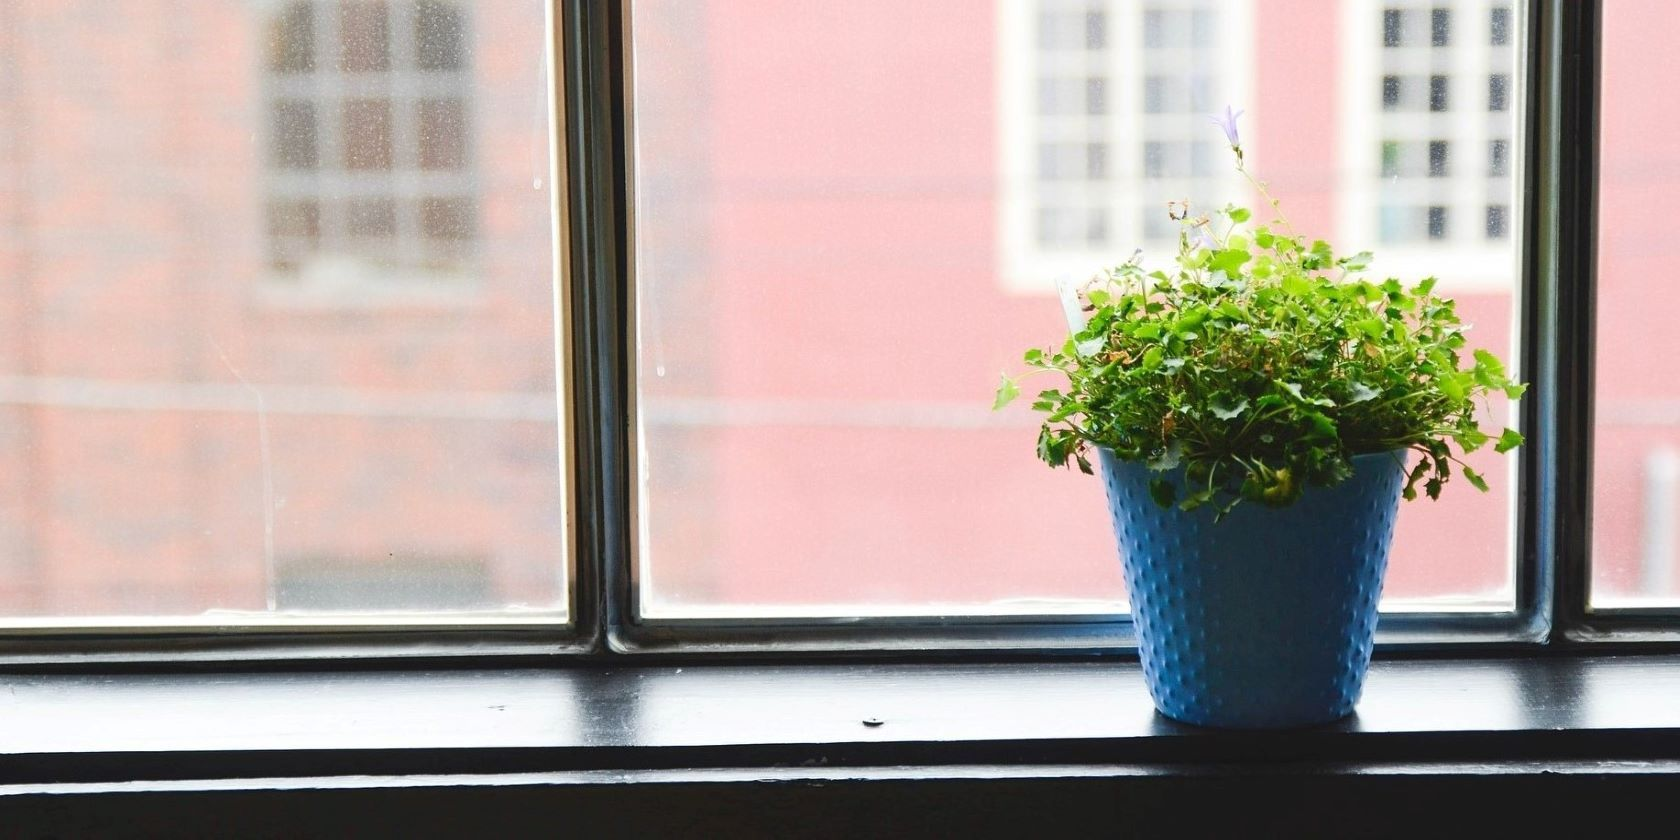 The 5 Best Android Apps for Taking Care of House Plants